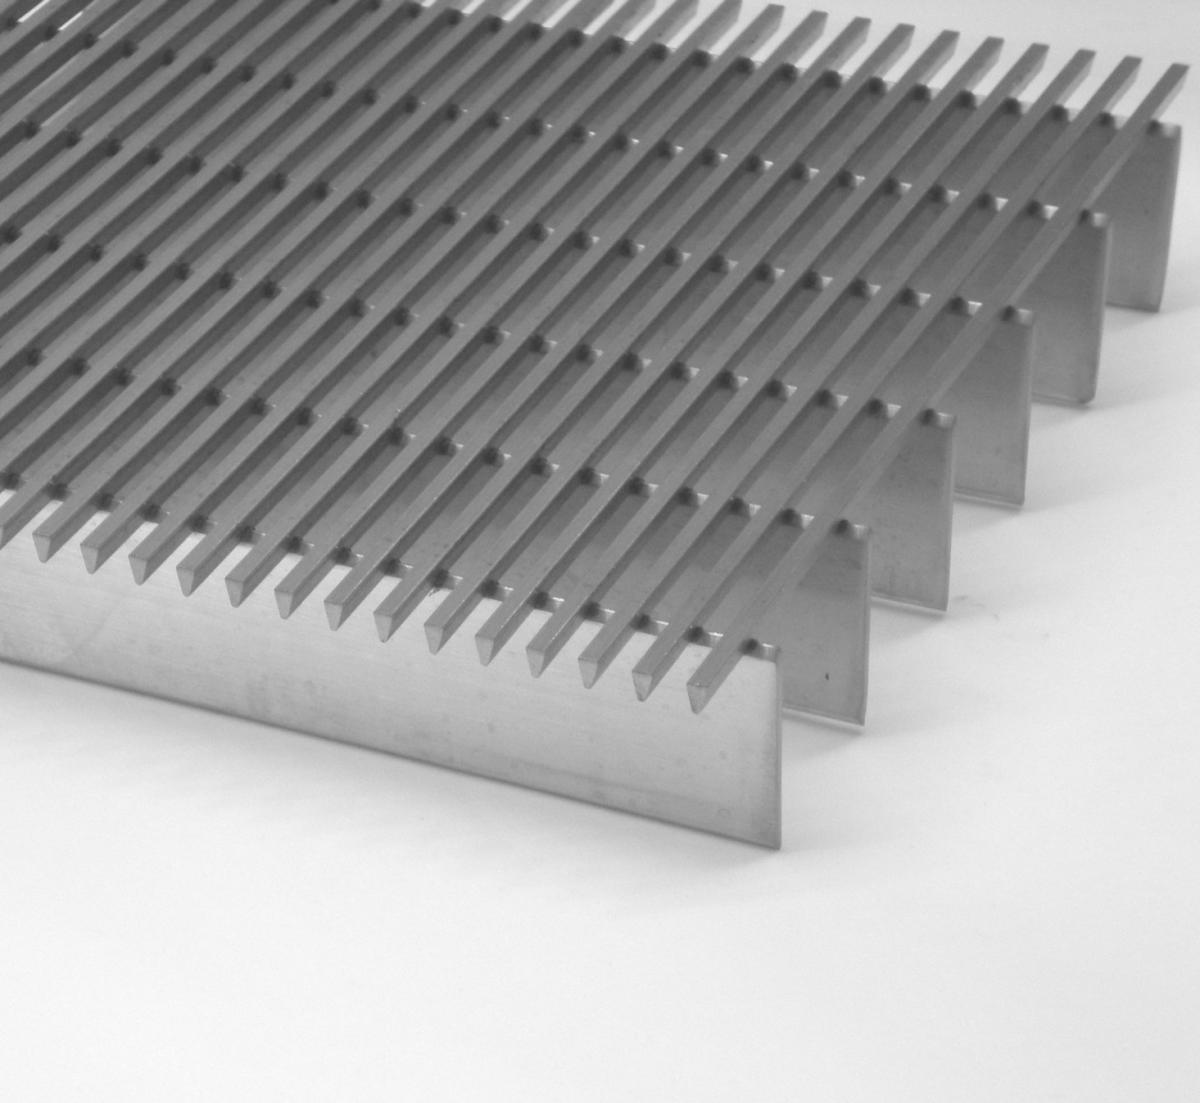 500 Stainless Steel Grating